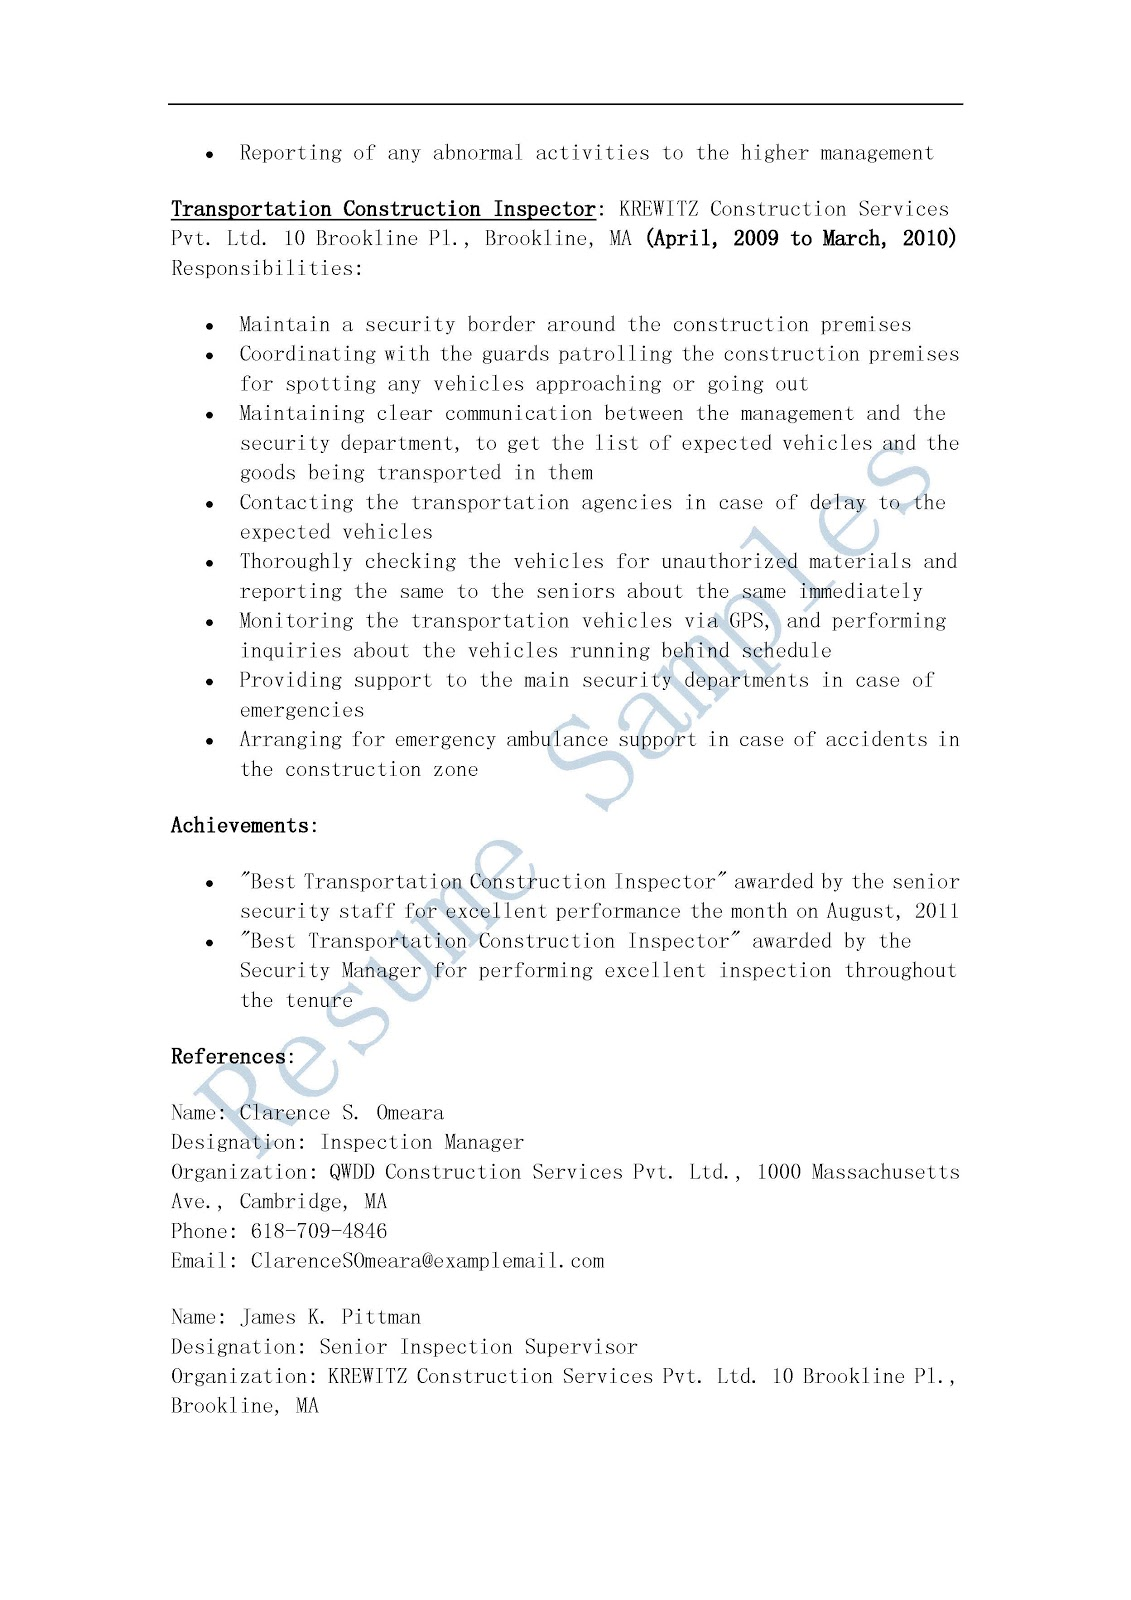 Essay On Internet Protocol Television Iptv Construction Resume